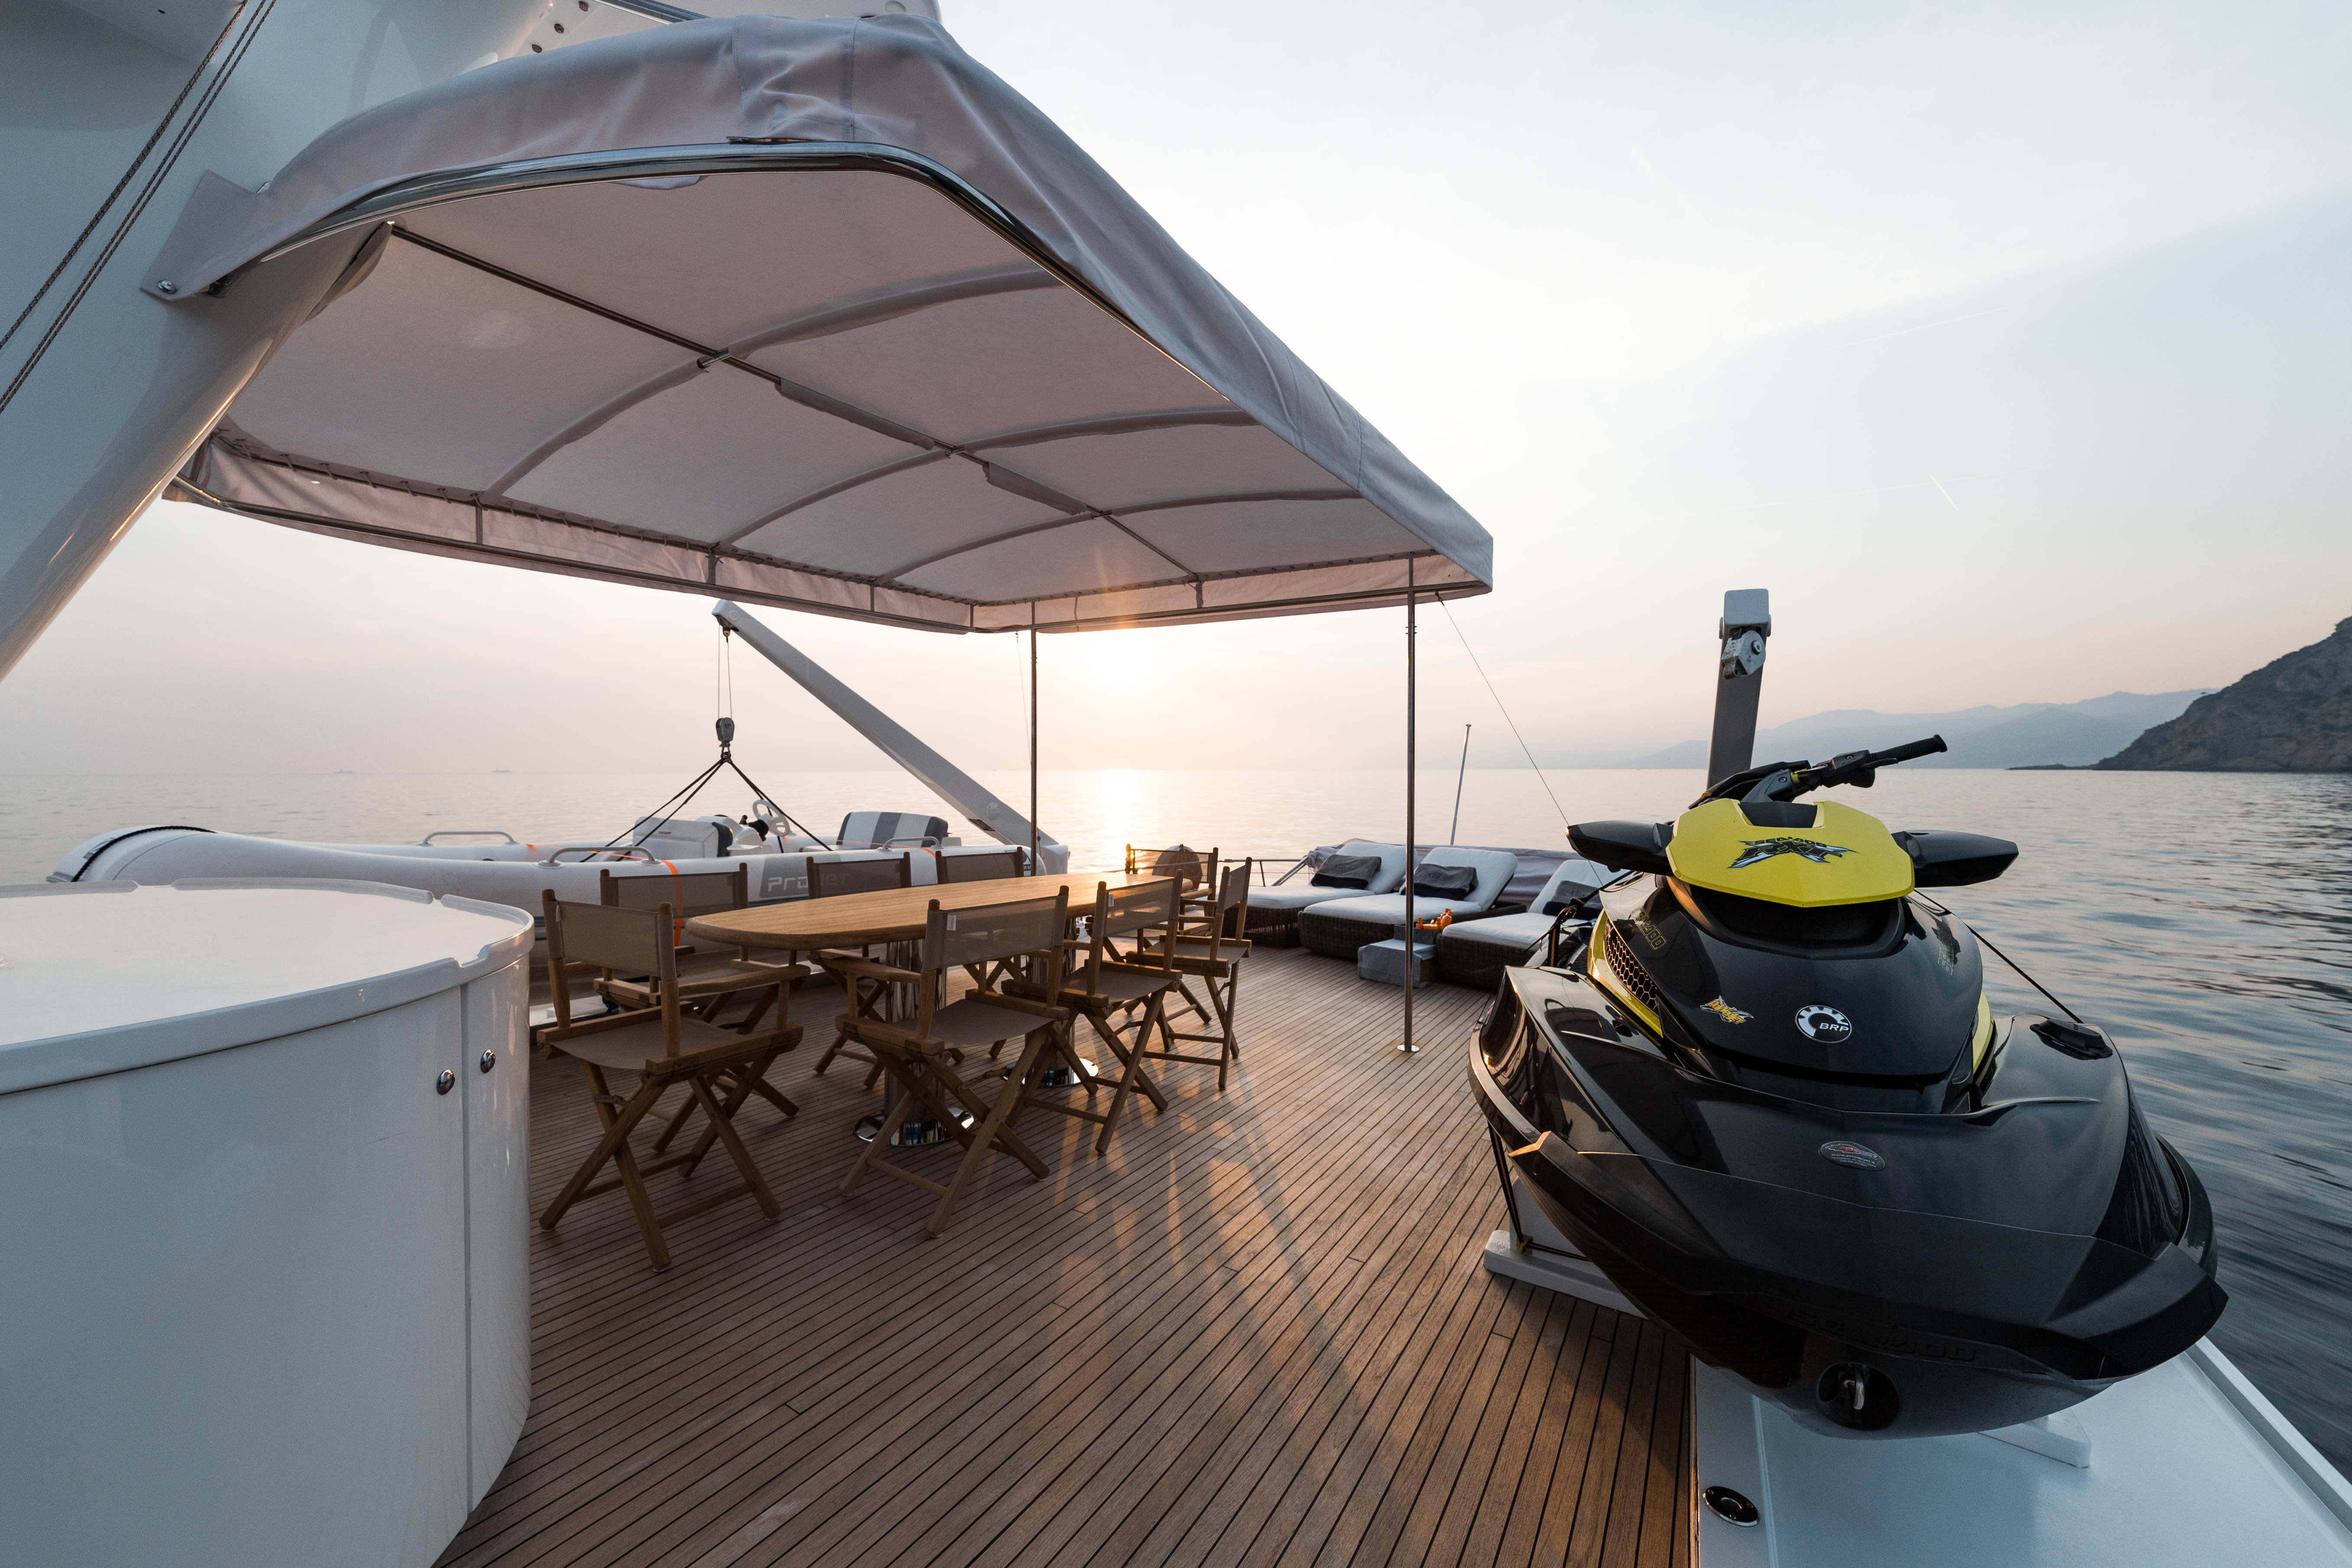 M/Y PAOLUCCI yacht for charter sundeck